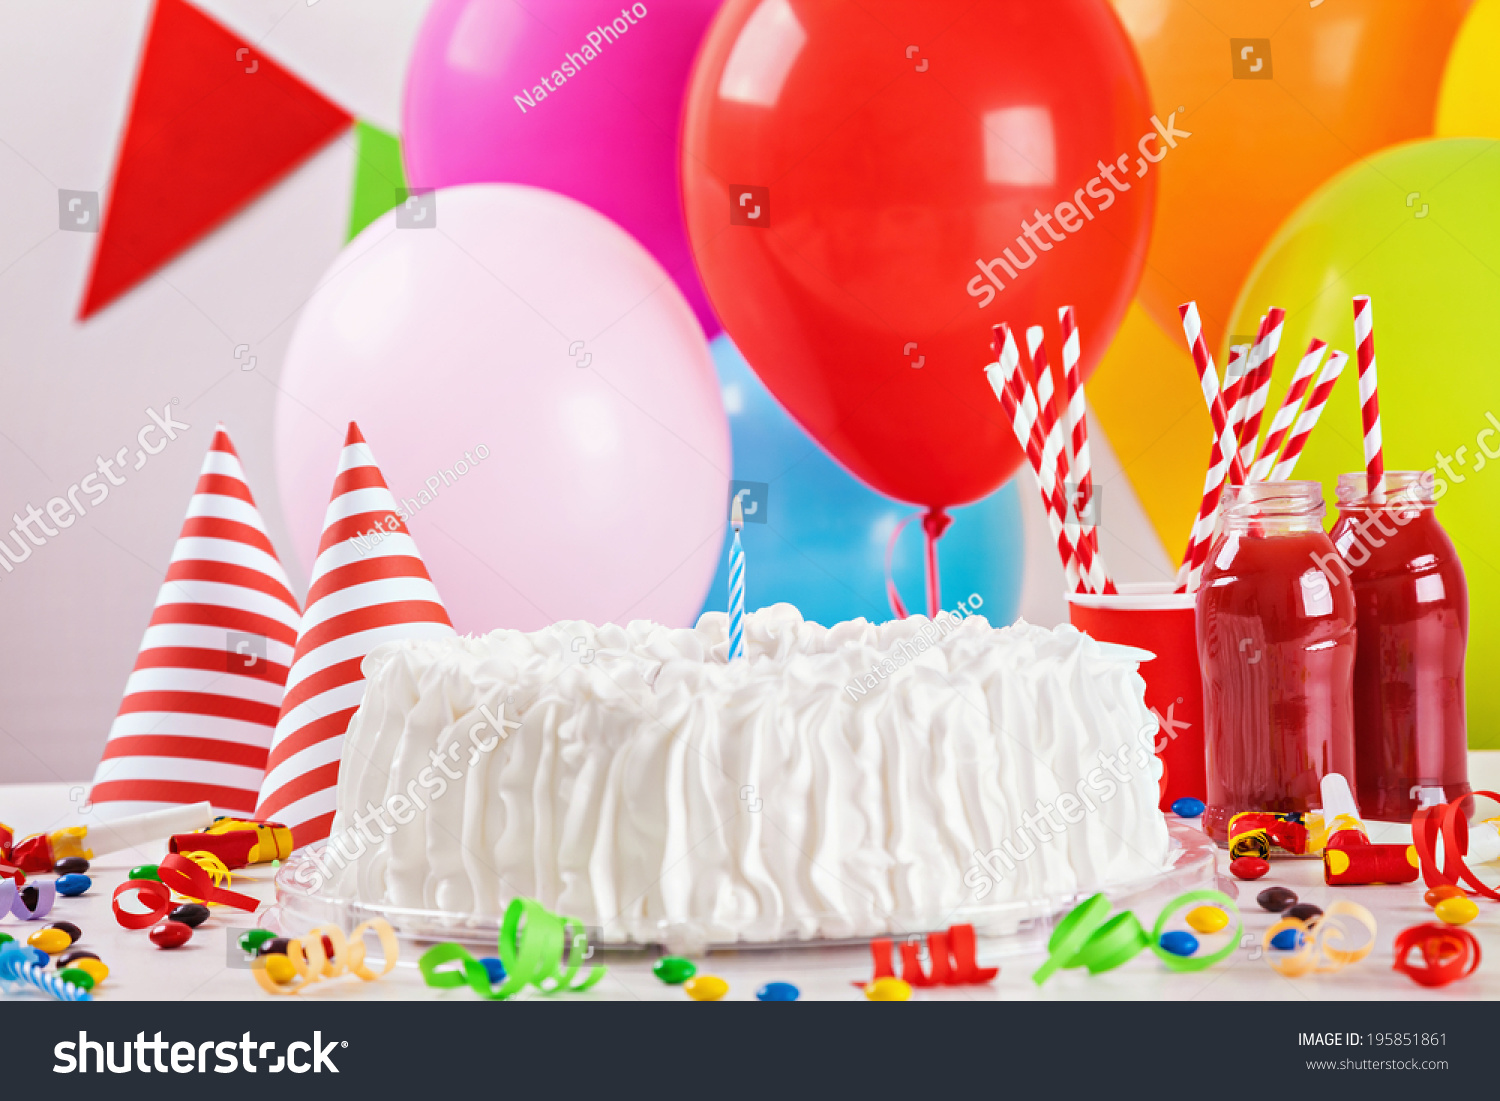 Birthday cake on colorful balloon background stock photo for Balloon cake decoration